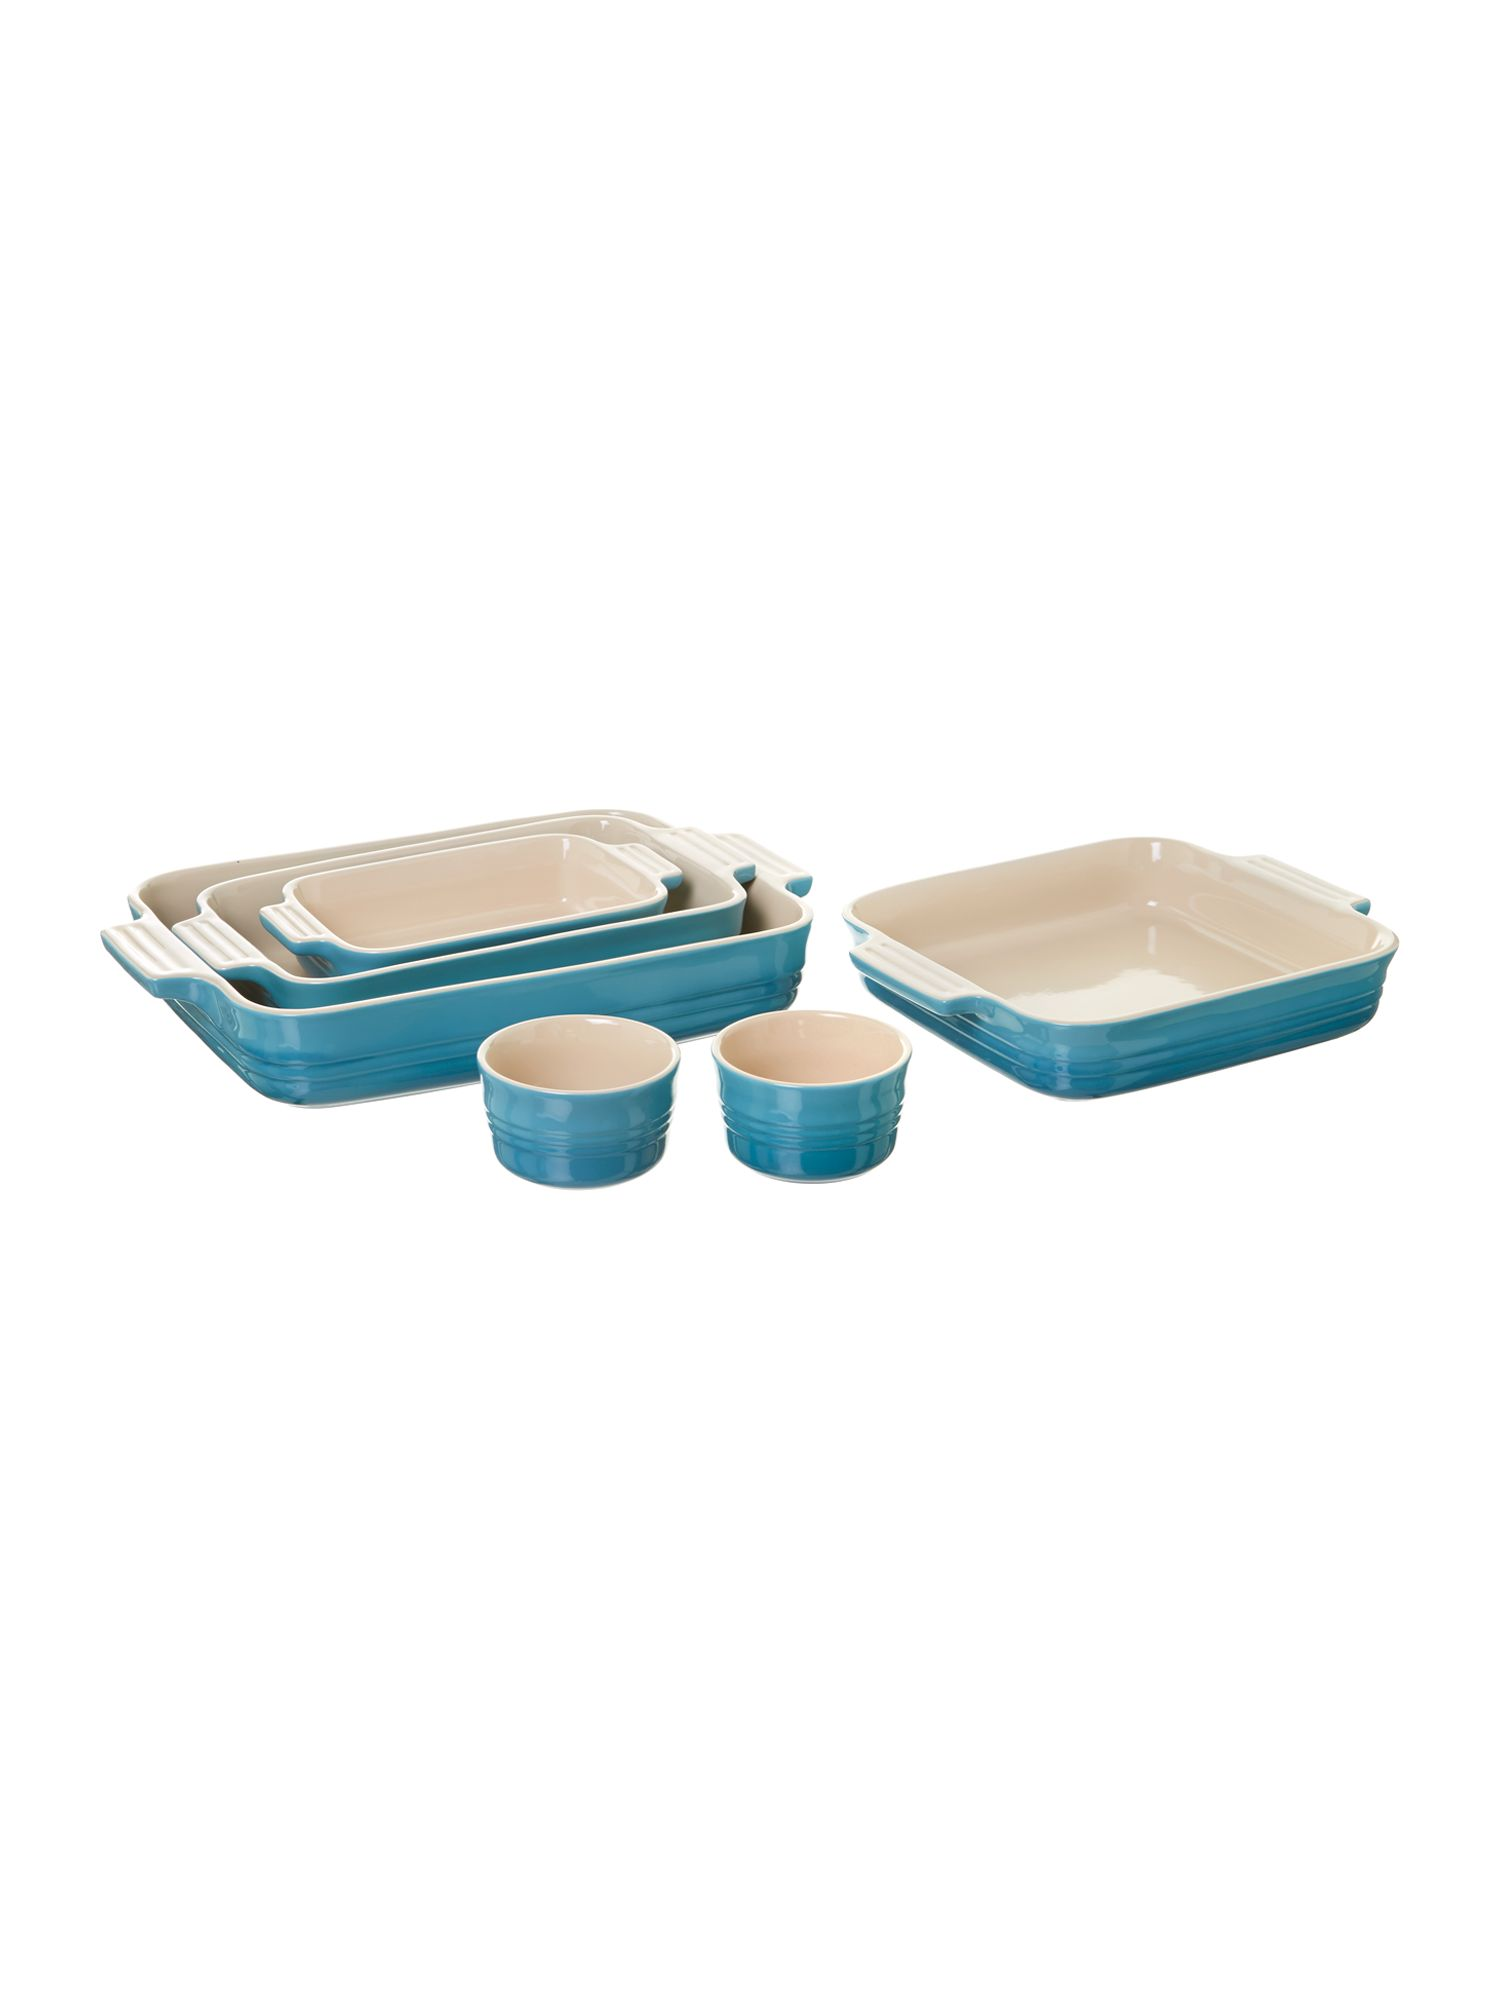 Ovenware range in Teal